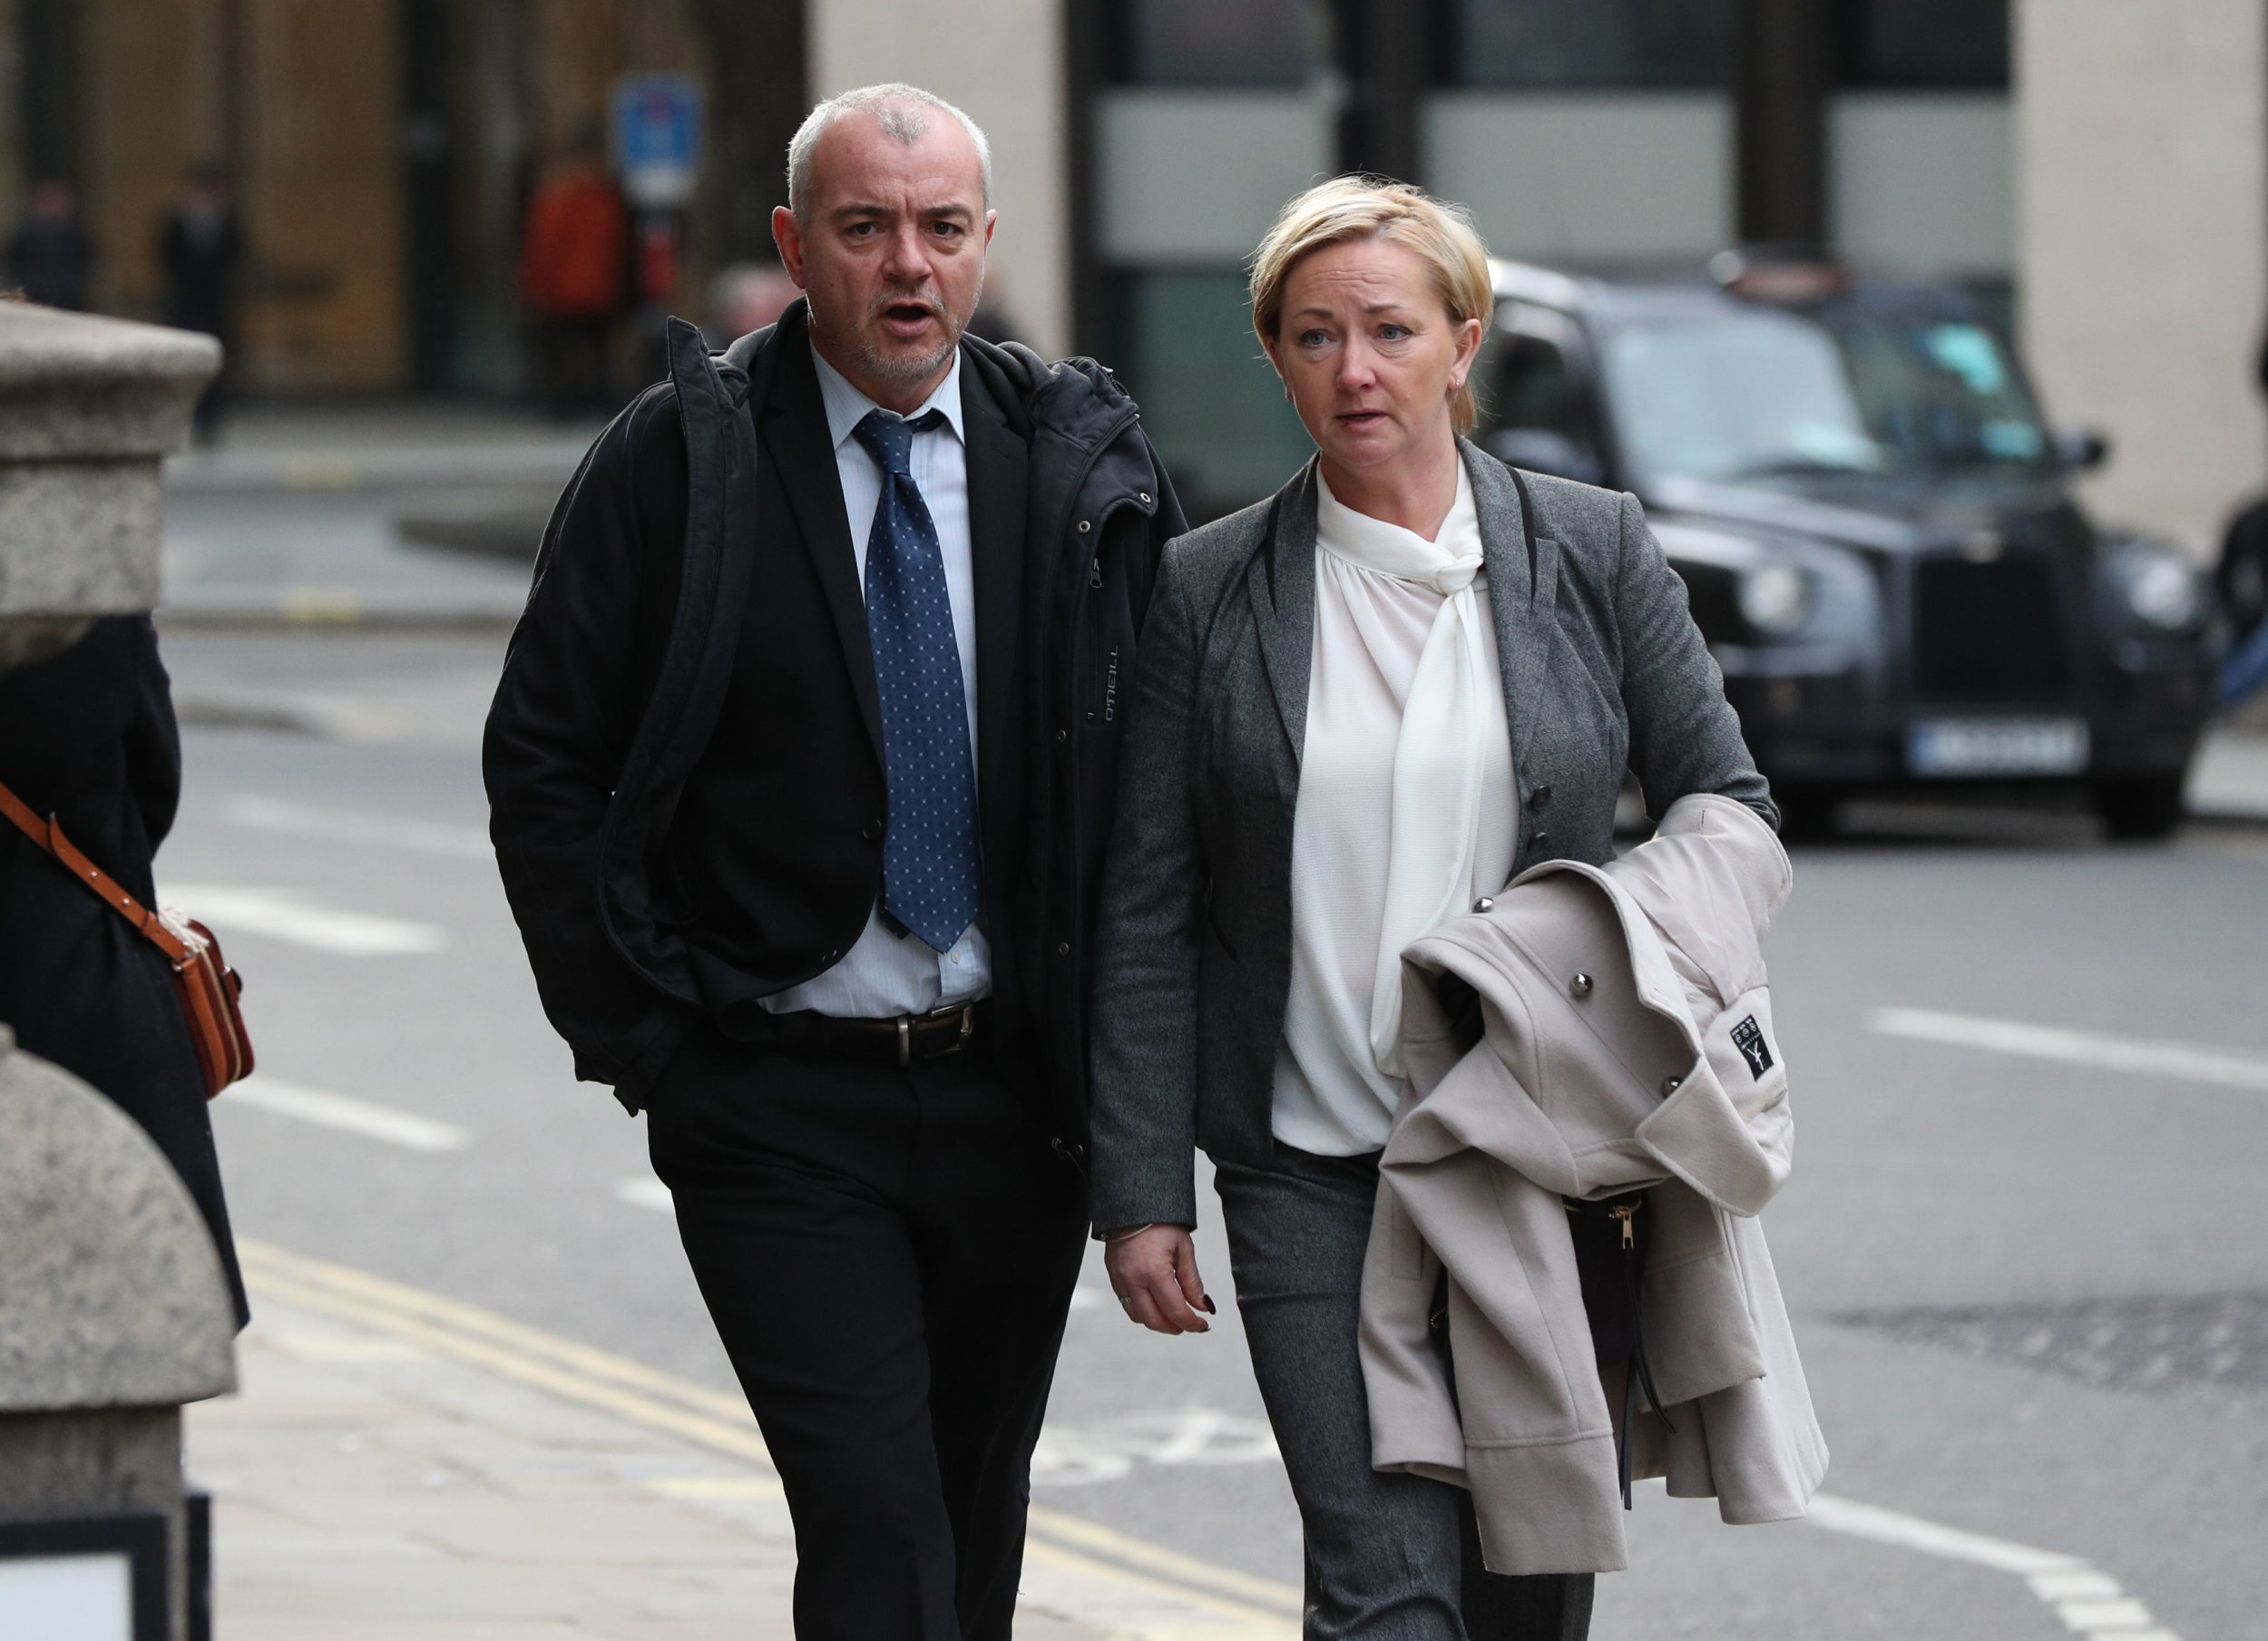 Previously unissued photo of Detective Constables Lee Pollard (left) and Sharon Patterson leaving the Old Bailey in London, where they are are accused of forging documents and concealing evidence over a three-year period, sabotaging a string of child sex abuse investigations. PRESS ASSOCIATION Photo. Picture date: Monday January 14, 2019. See PA story COURTS Officers. Photo credit should read: Jonathan Brady/PA Wire